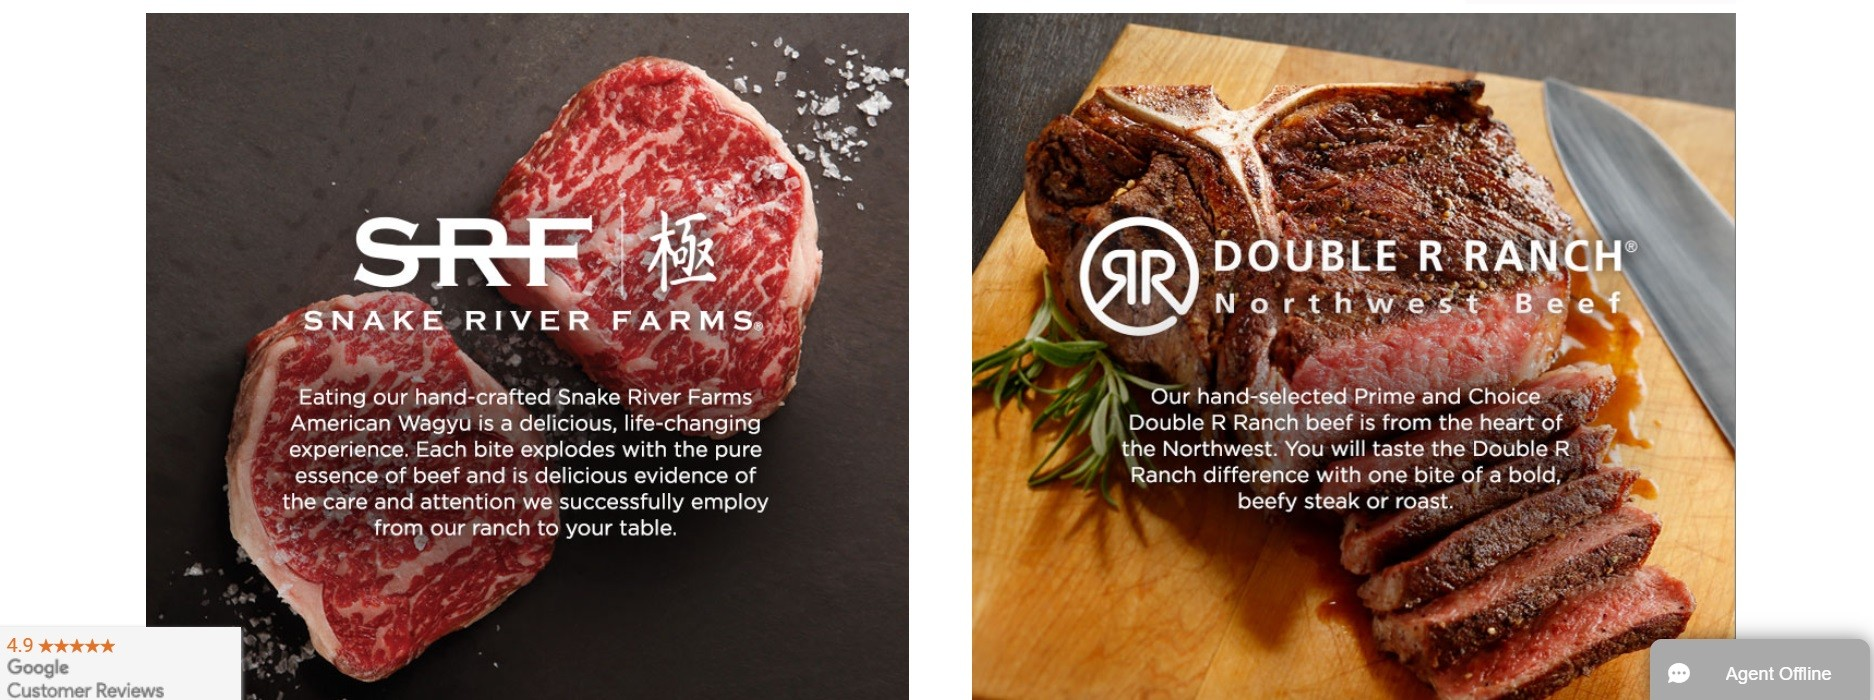 Snake River Farms - Double R Ranch Northwest Beef